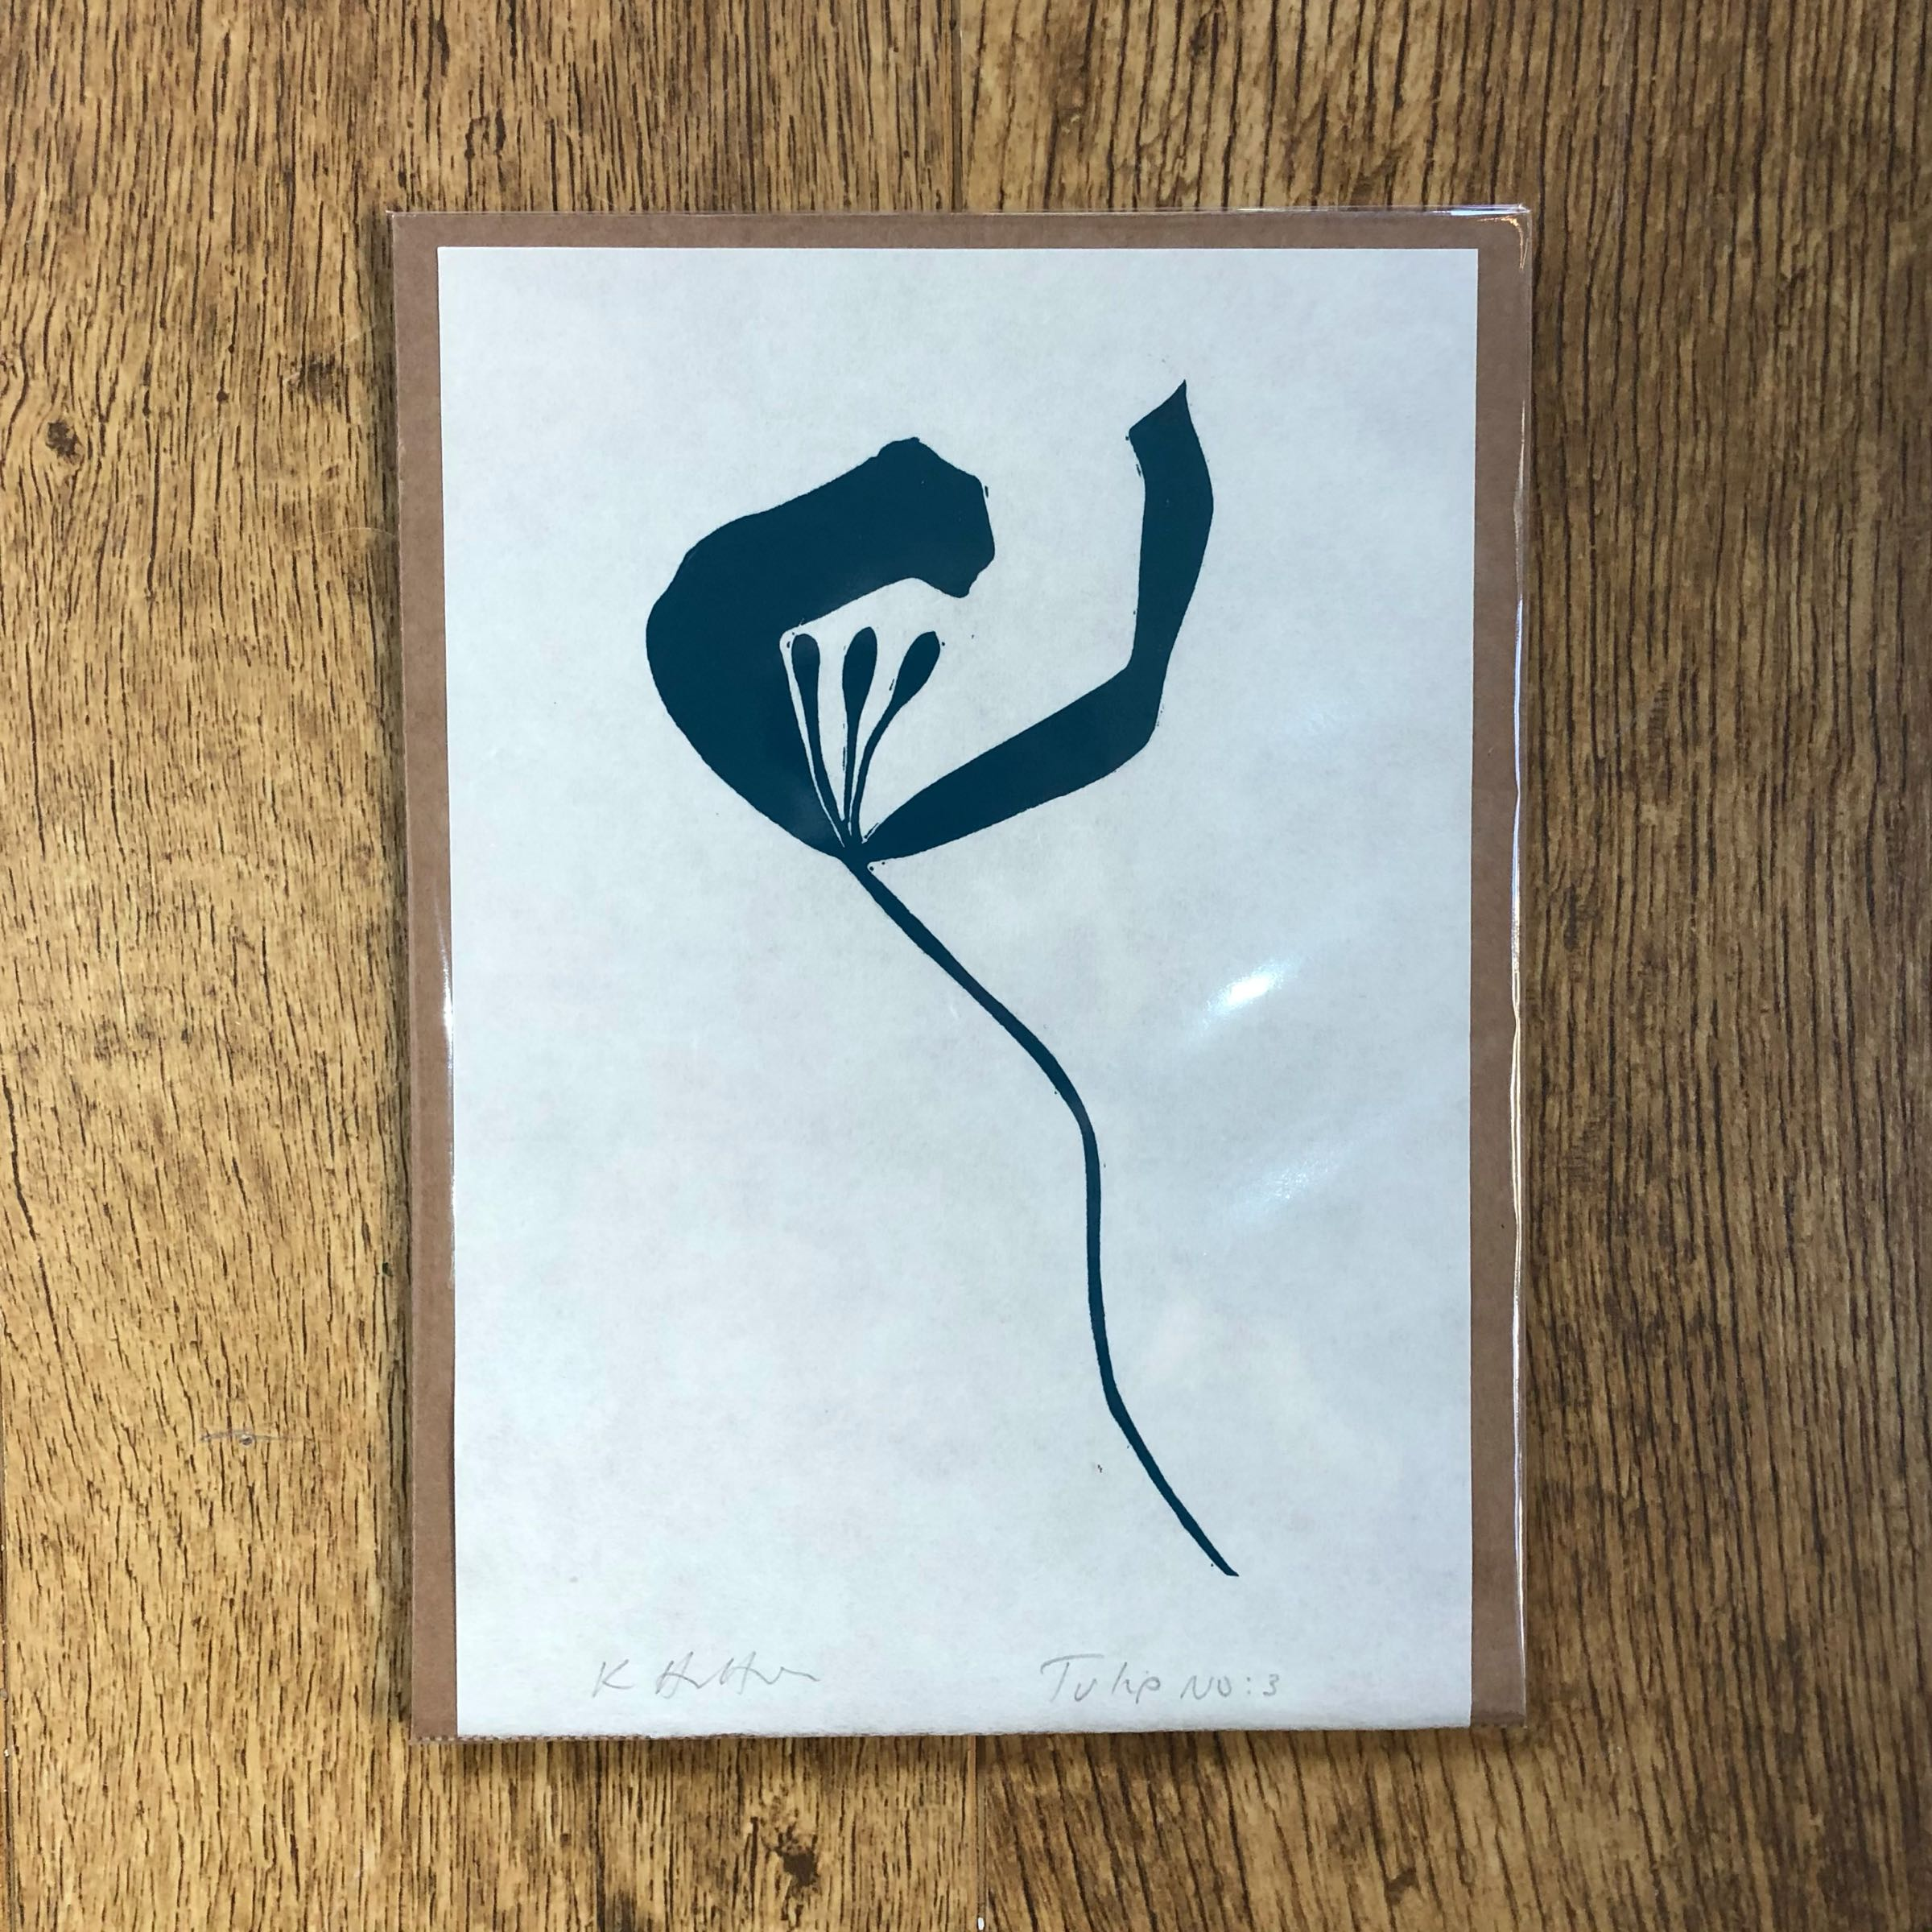 Tulip No. 3 single study lino print in Teal by Kathy Hutton